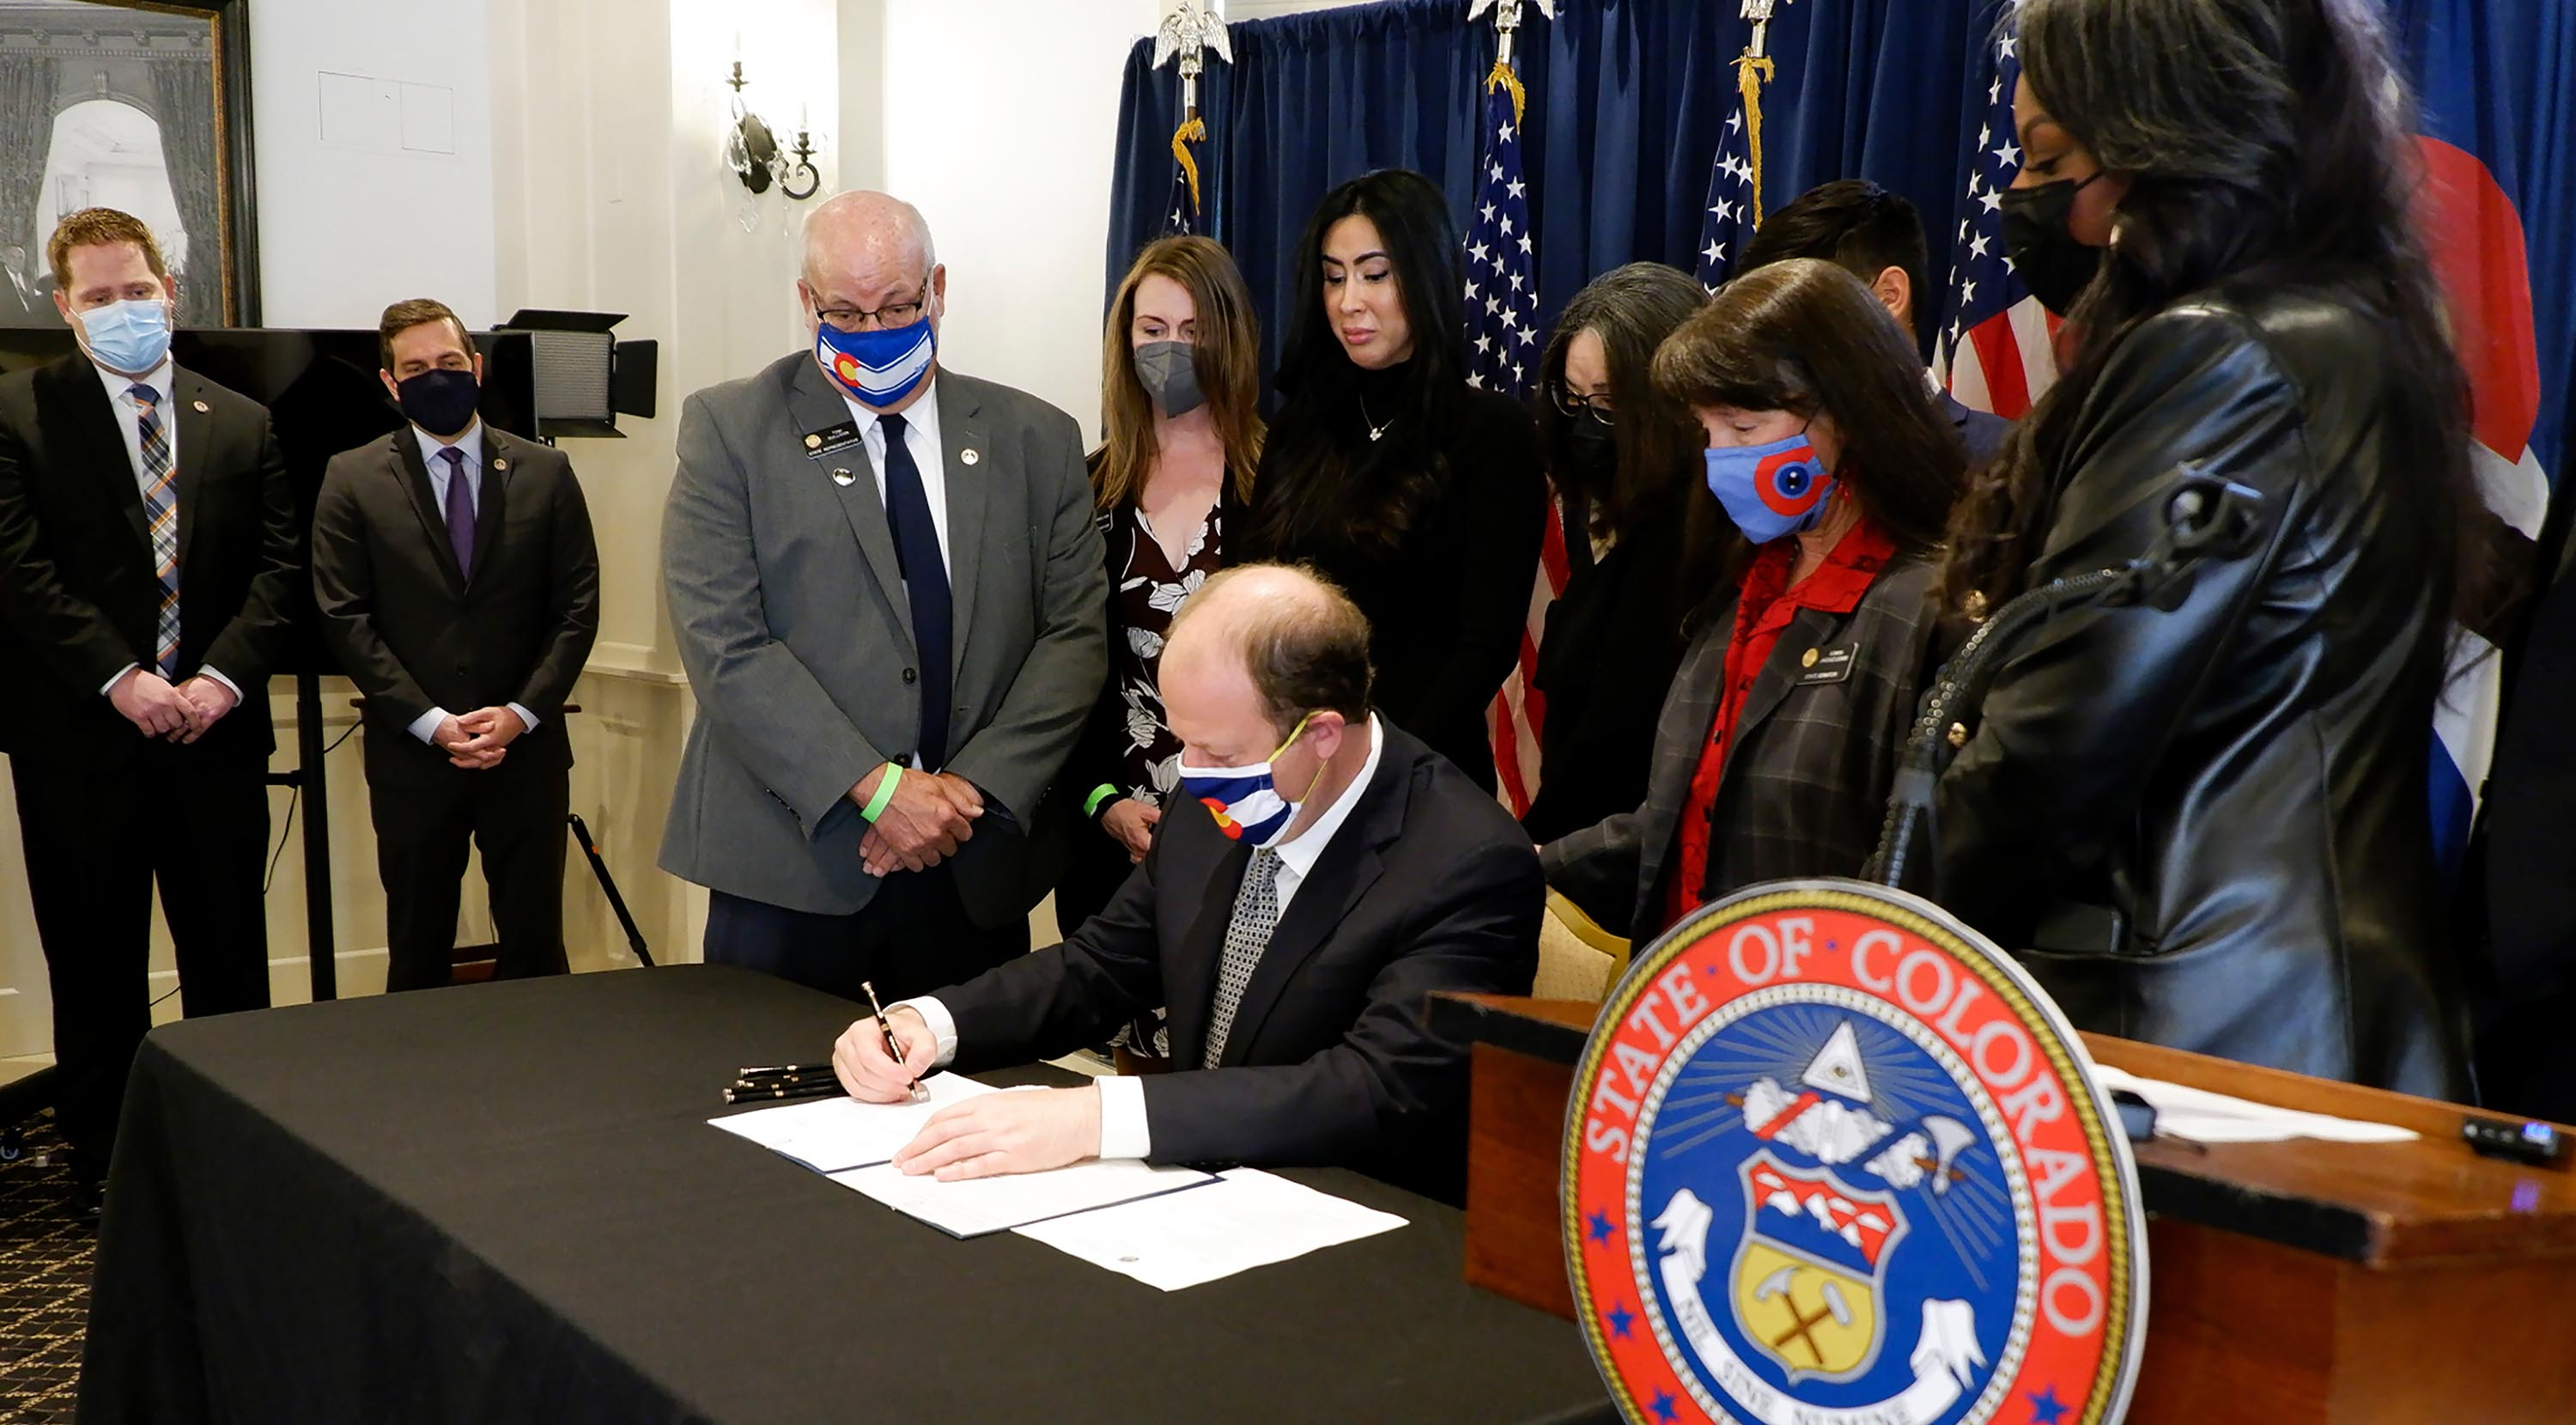 Colorado governor signs two gun measures into law nearly a month after Boulder shooting